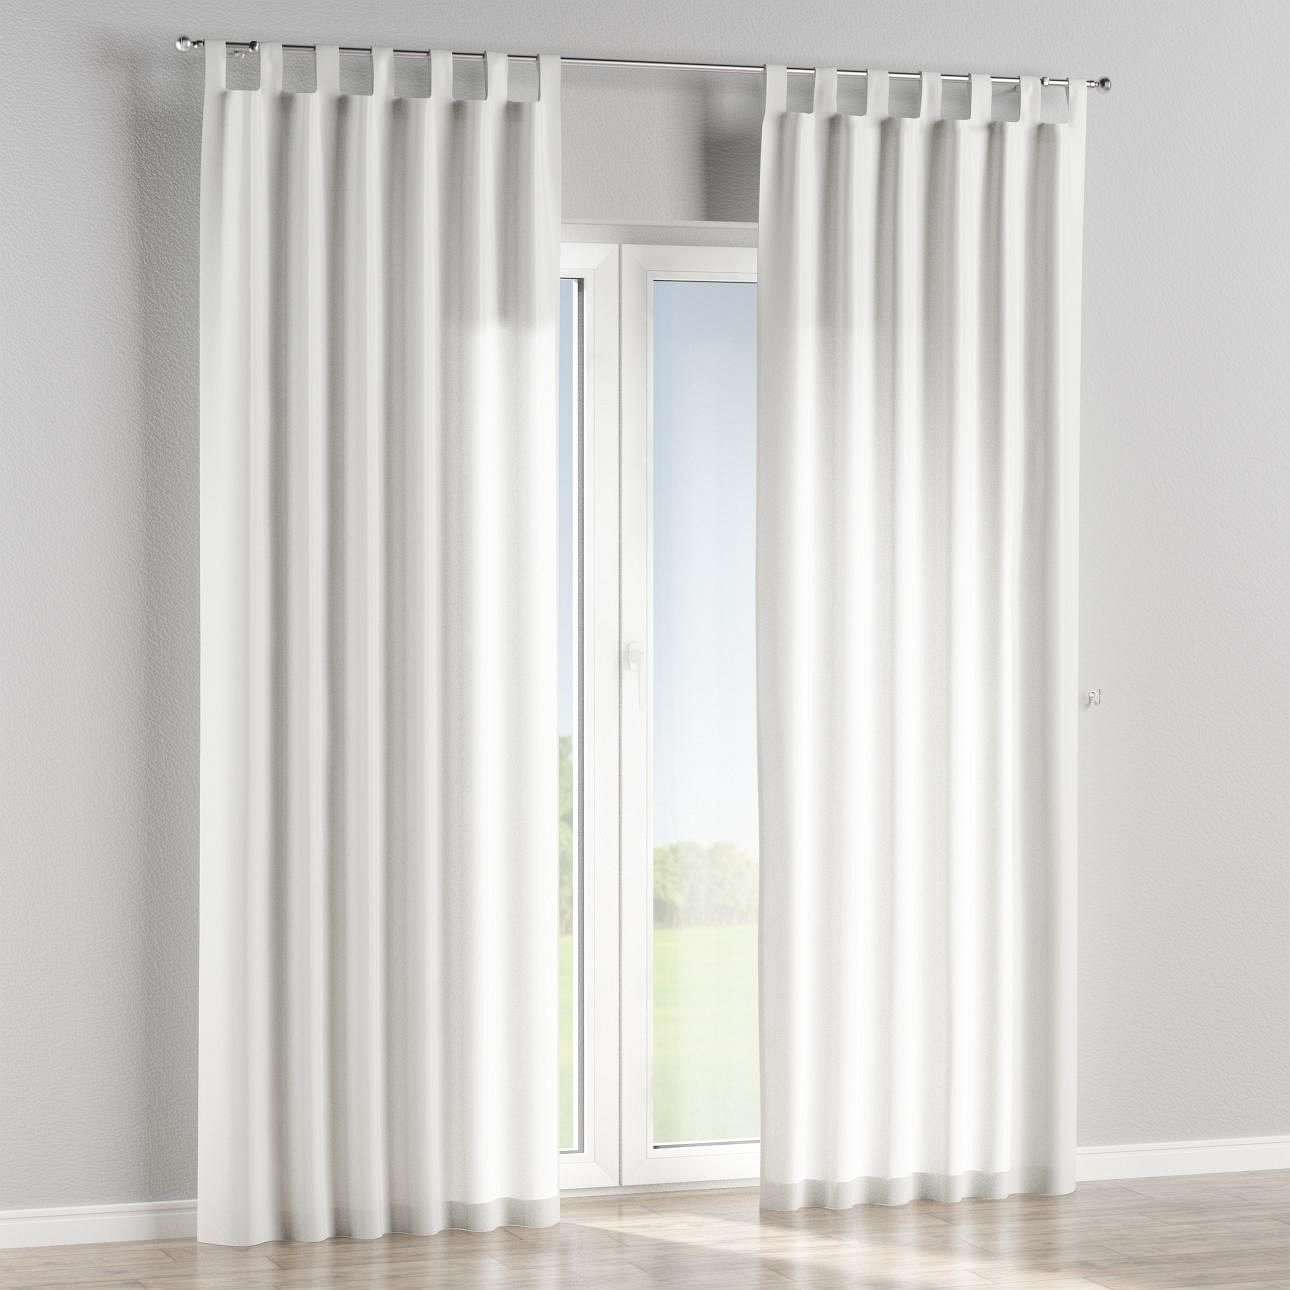 Tab top lined curtains in collection Rustica, fabric: 140-58